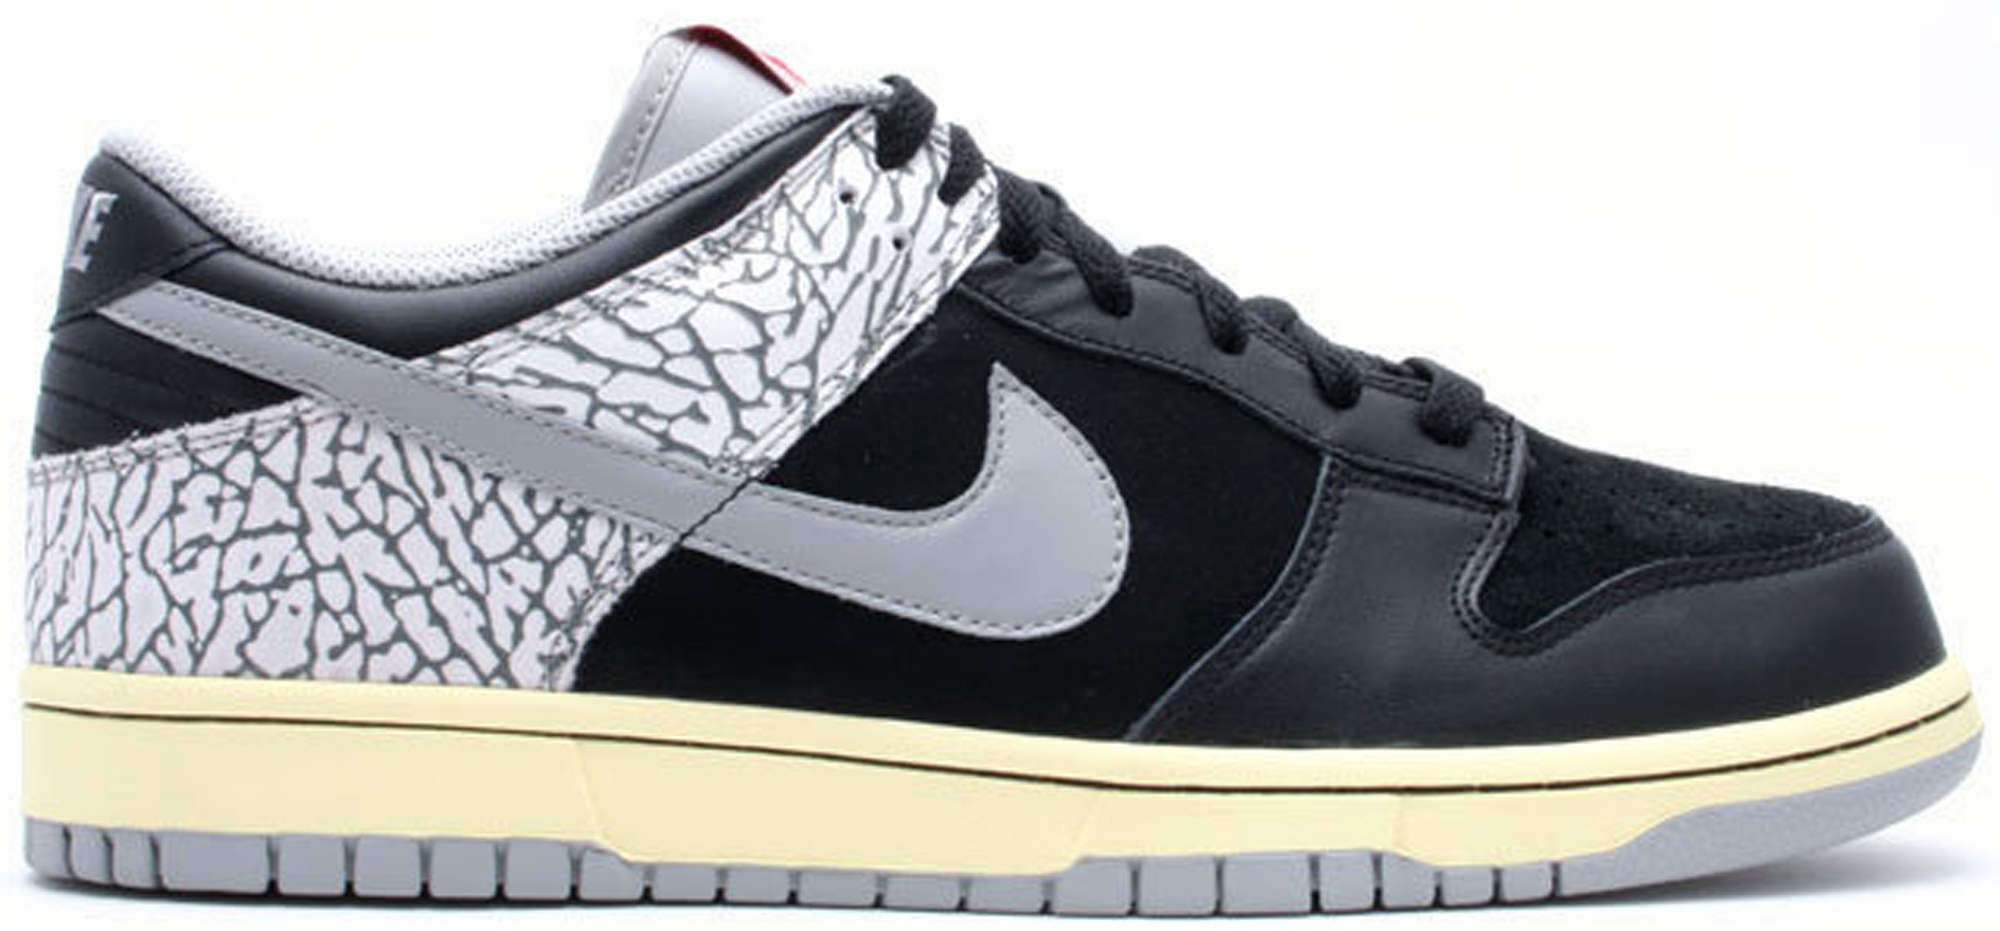 f778fb5164d3d 2009 Nike Dunk Low 2009 Nike Dunk Release Dates   The Centre for ...